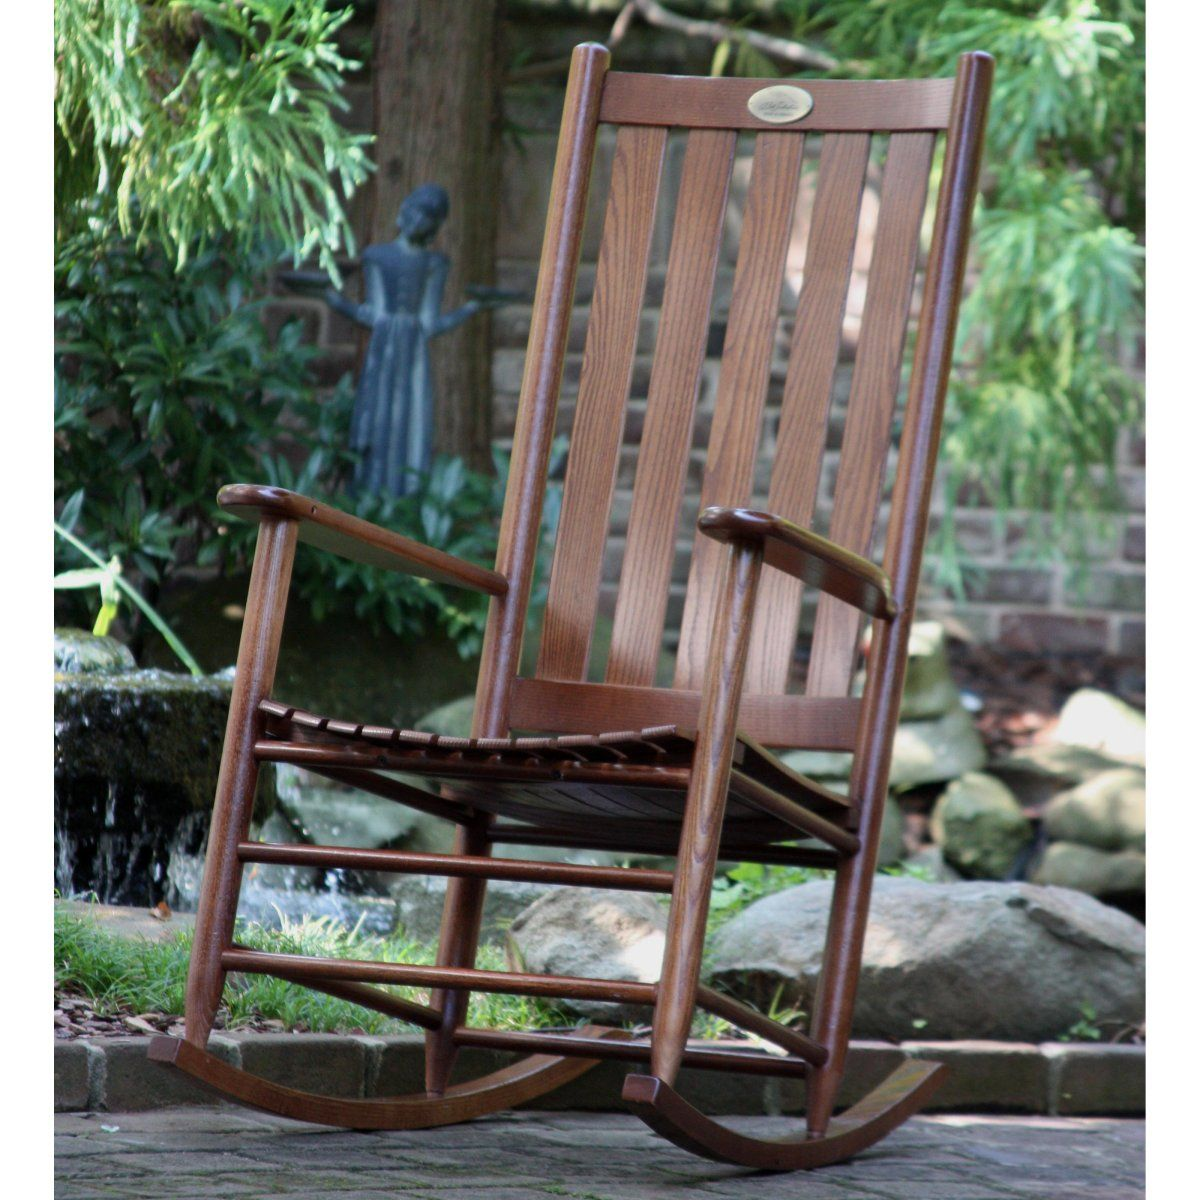 bob timberlake cottage rocker will look great on our porch dream